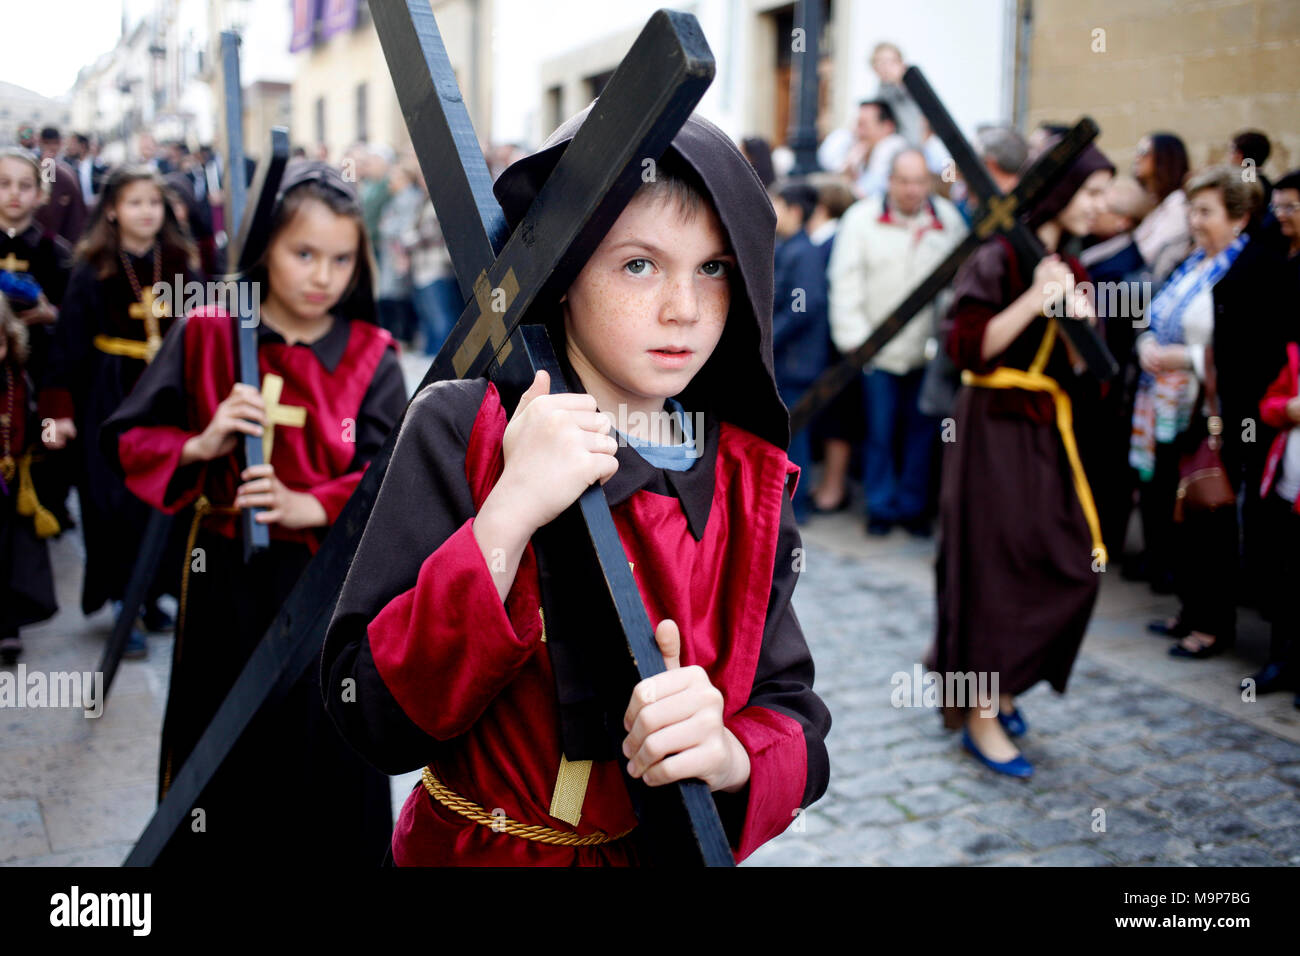 Boys and girls carrying crosses during Easter Week celebrations in Baeza, Jaen Province, Andalusia, Spain - Stock Image